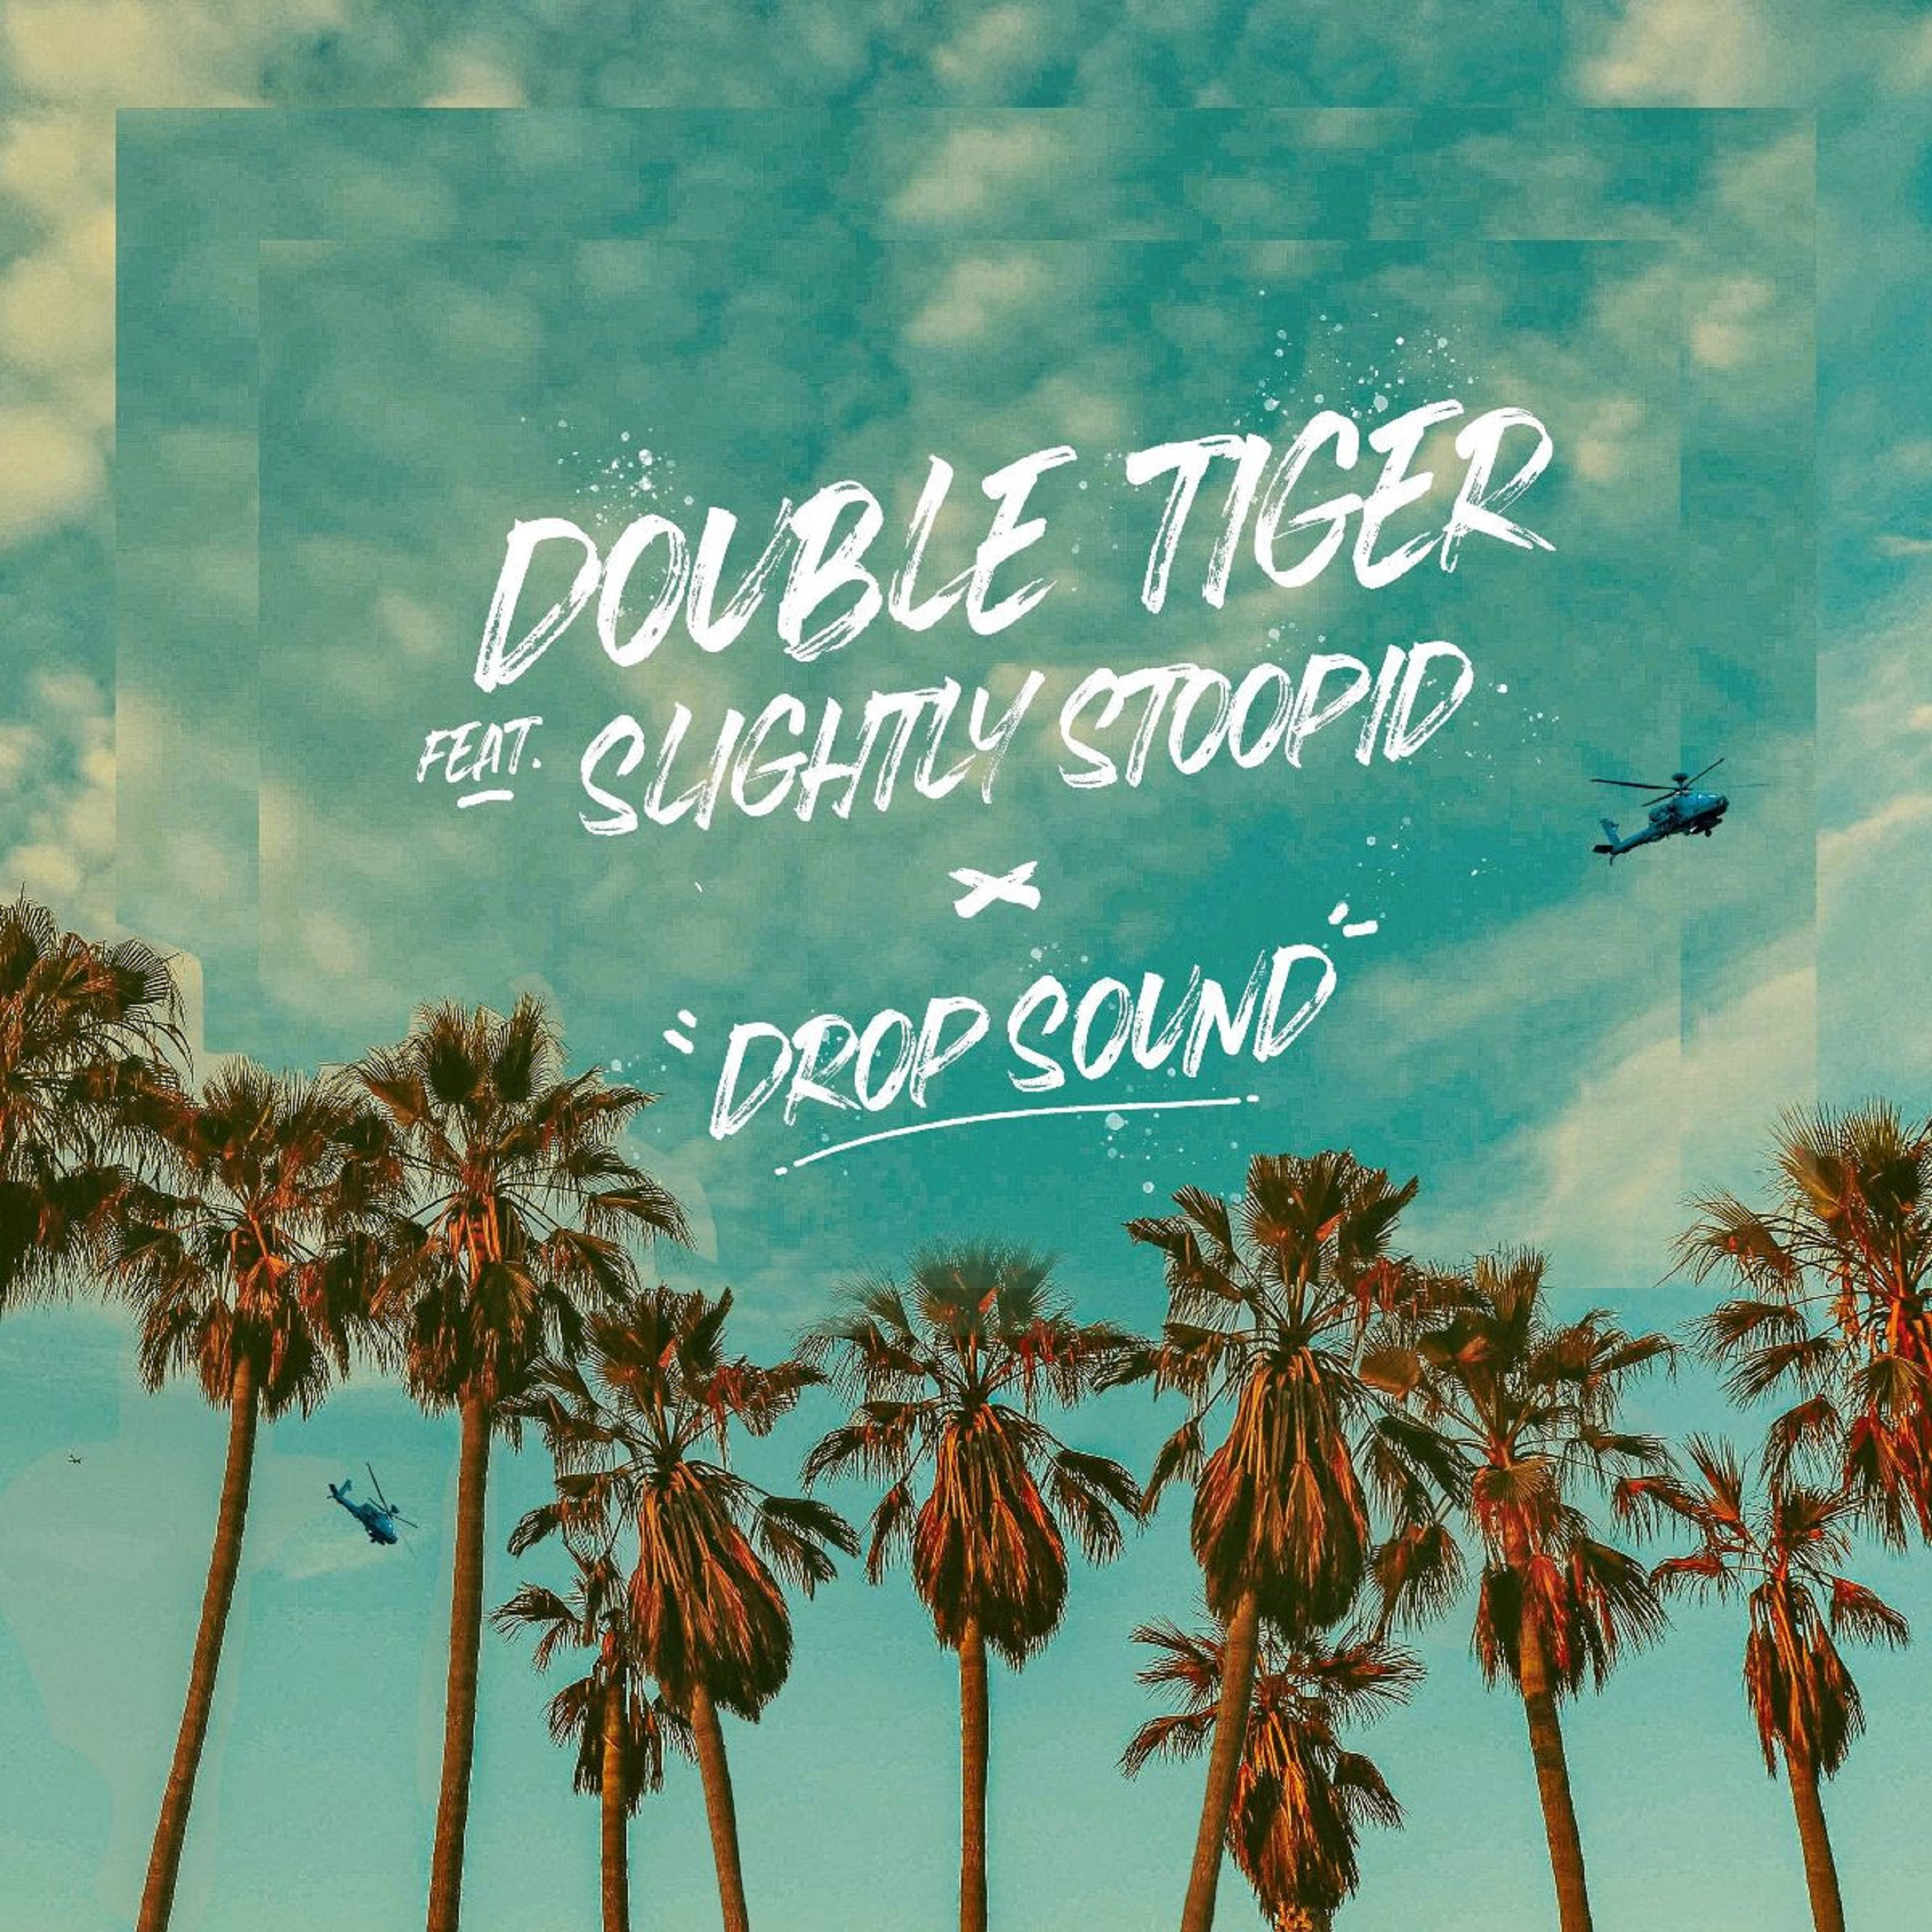 Double Tiger Announces New Album Due Out Dec 11th